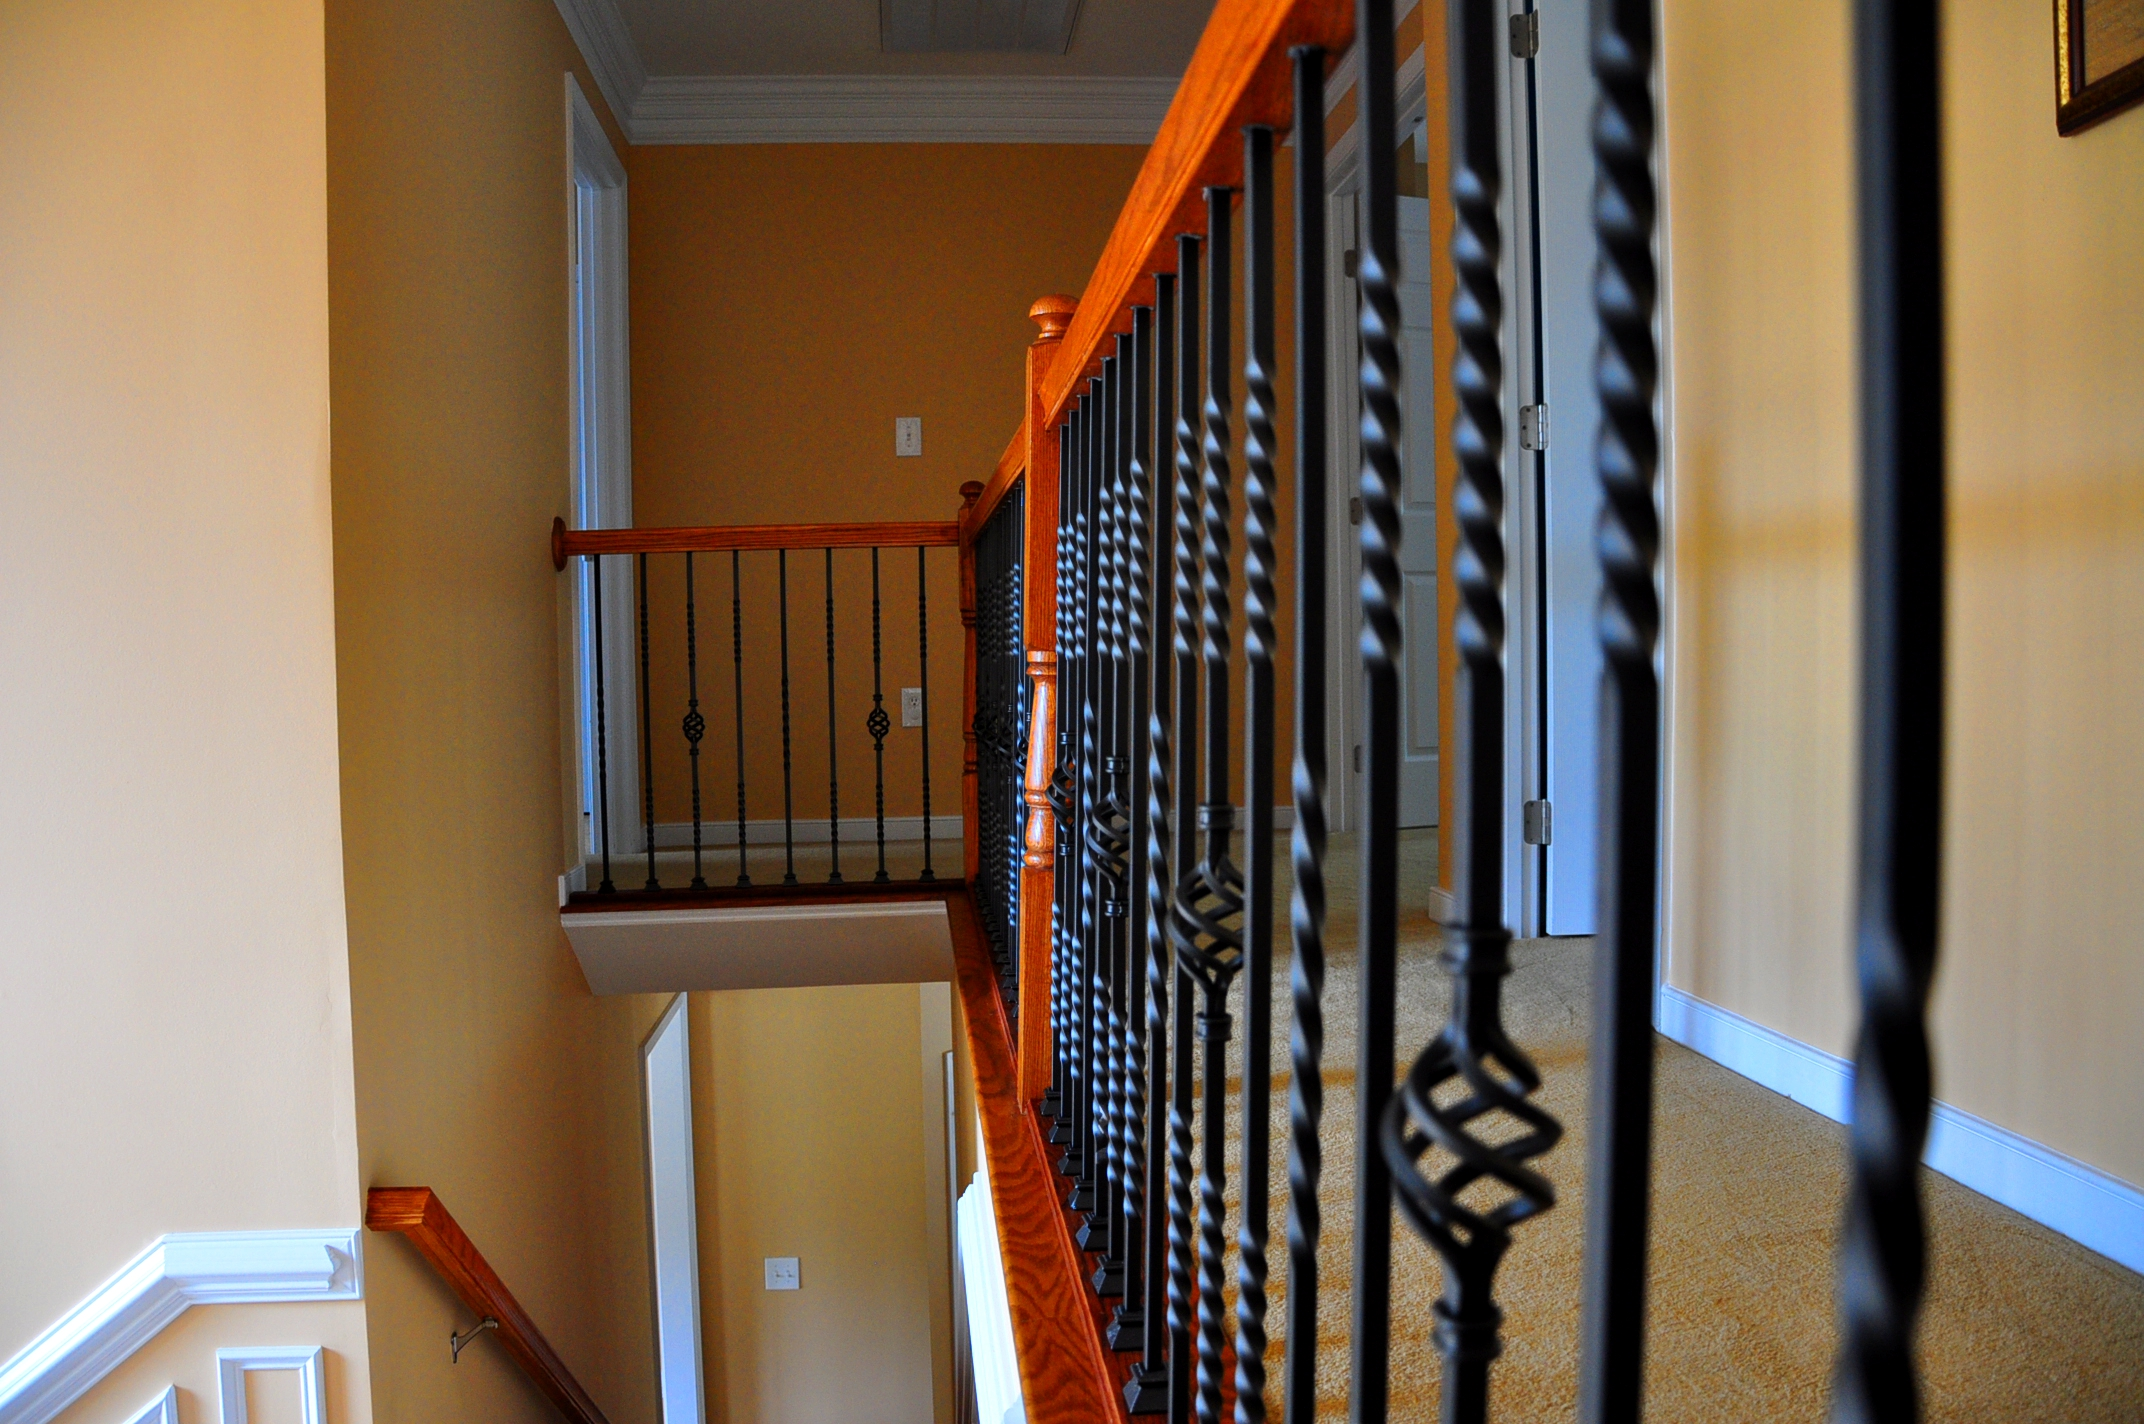 Stainless Steel Railing : 8 Cool Wrought iron balusters ...